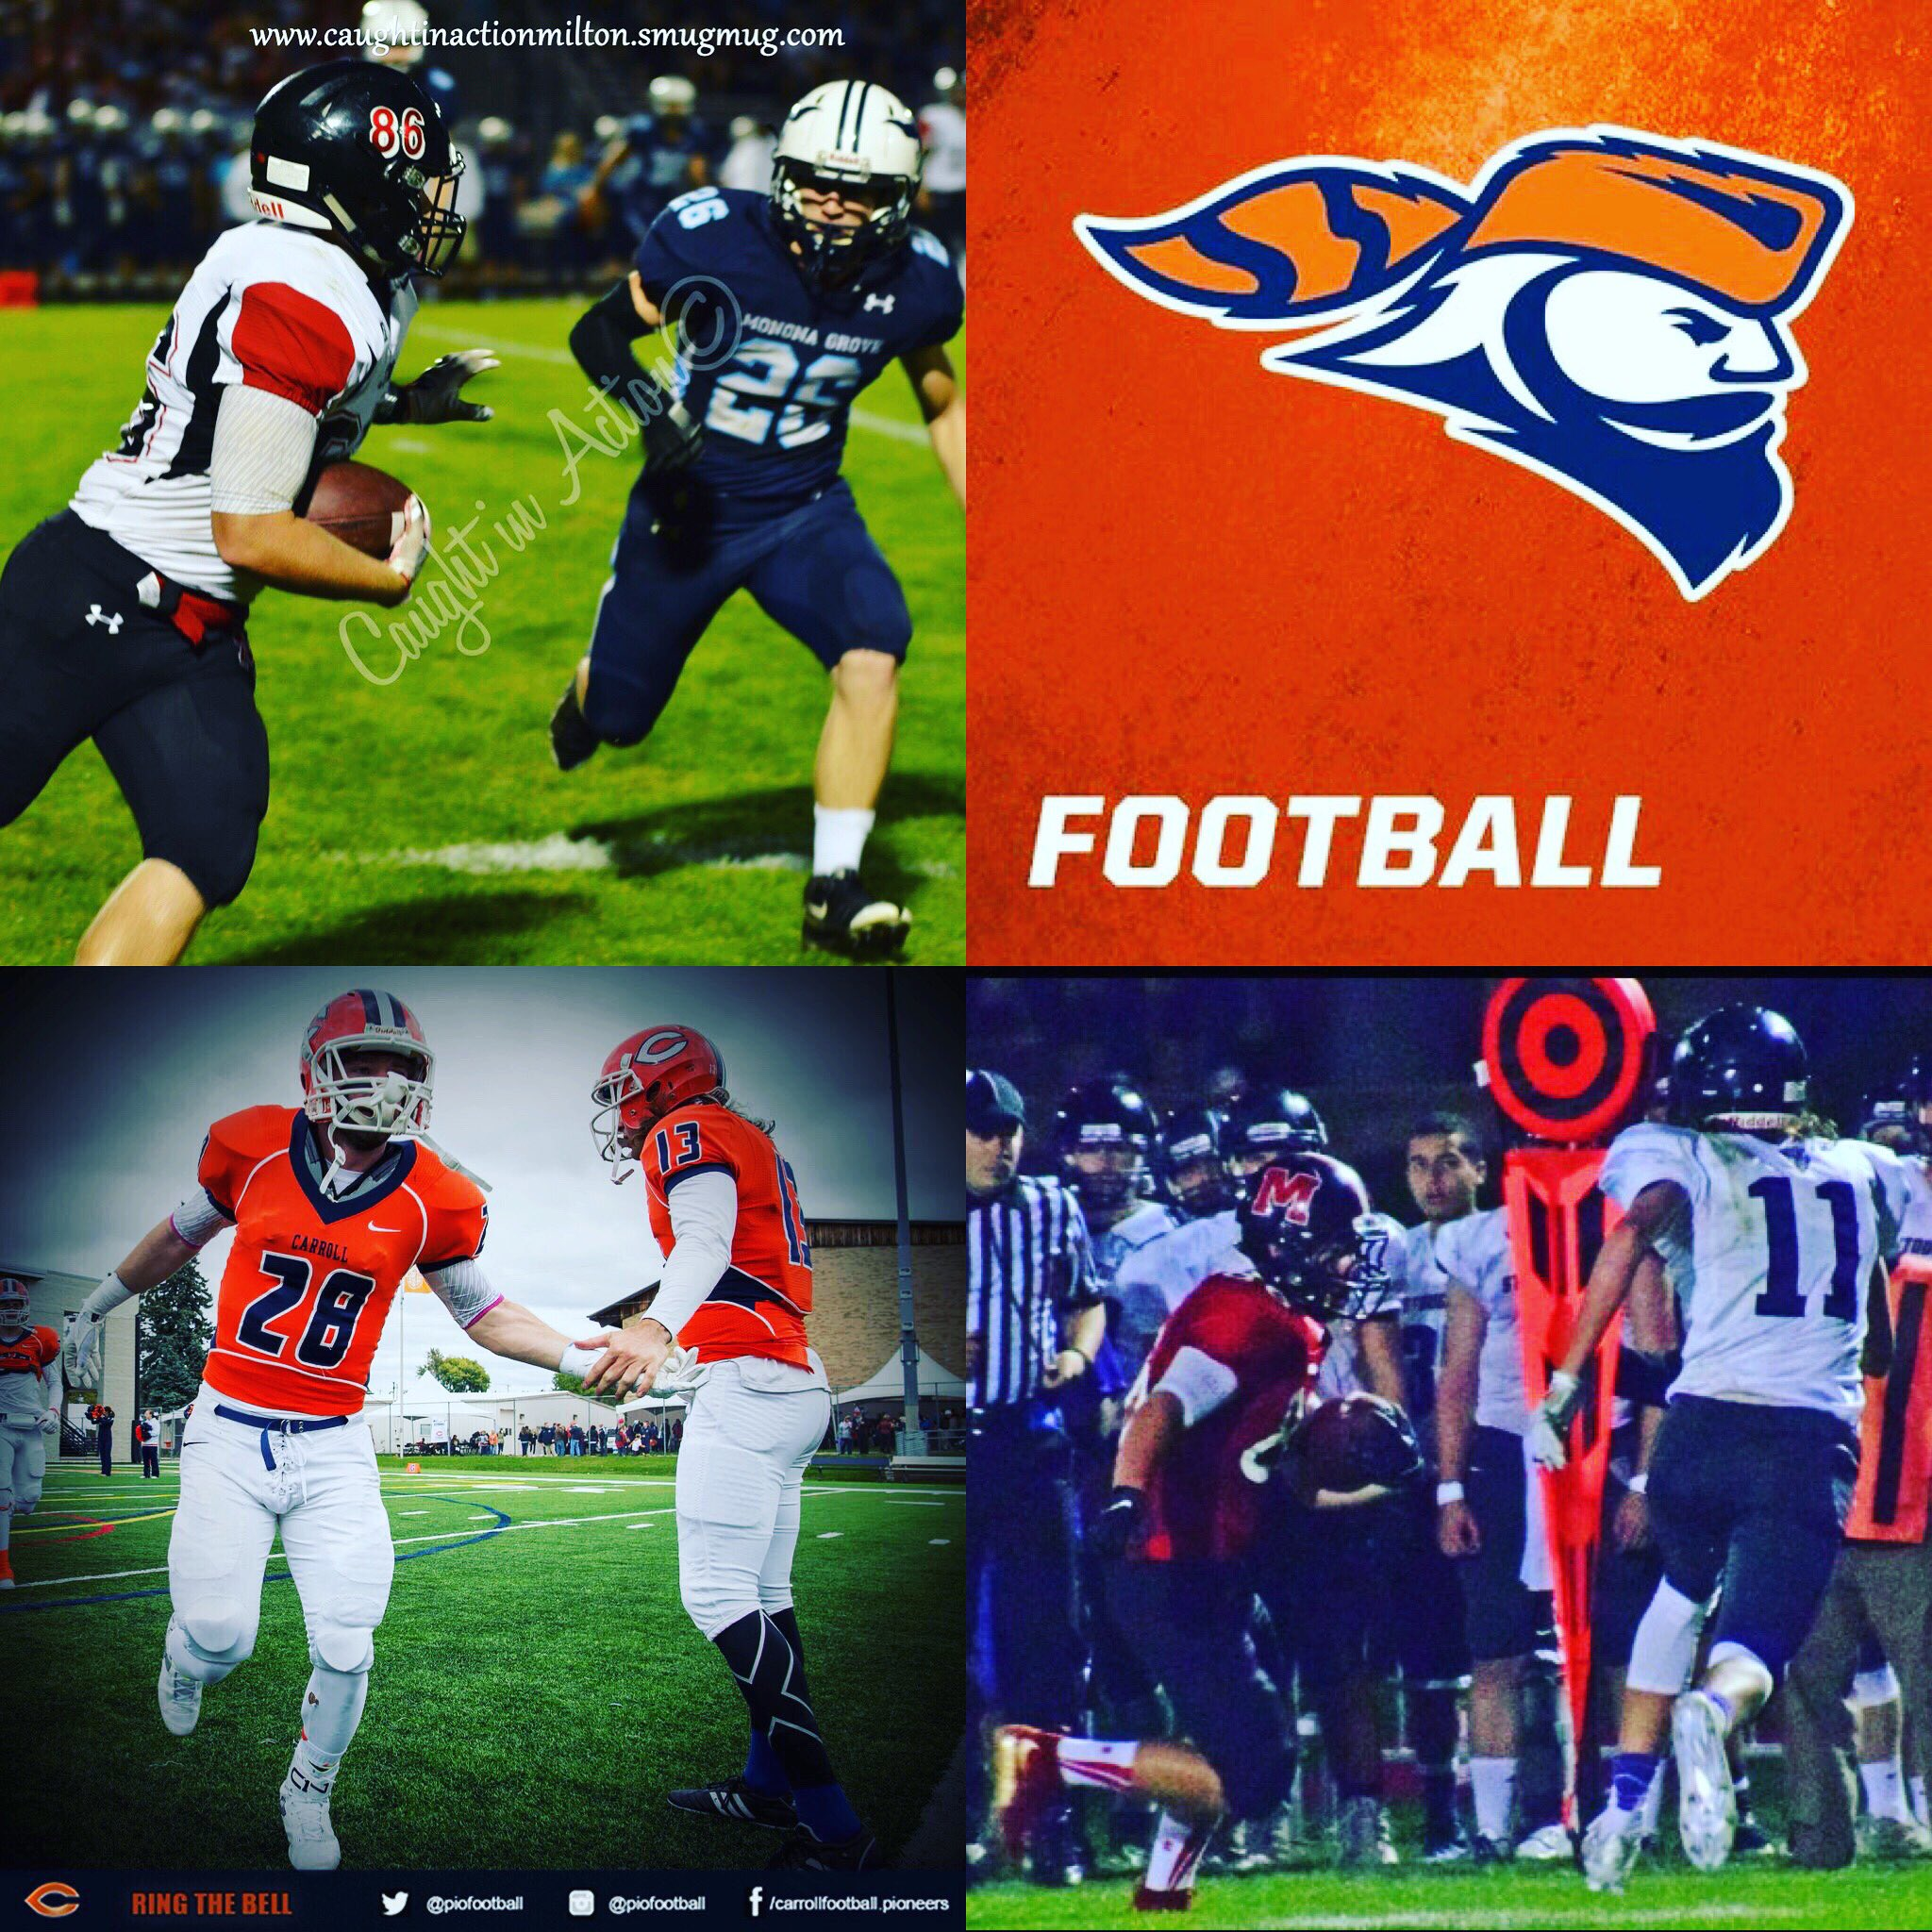 I have decided to continue my academic and athletic career at Carroll University! 🔶🔷 https://t.co/5Xnvos9kcn